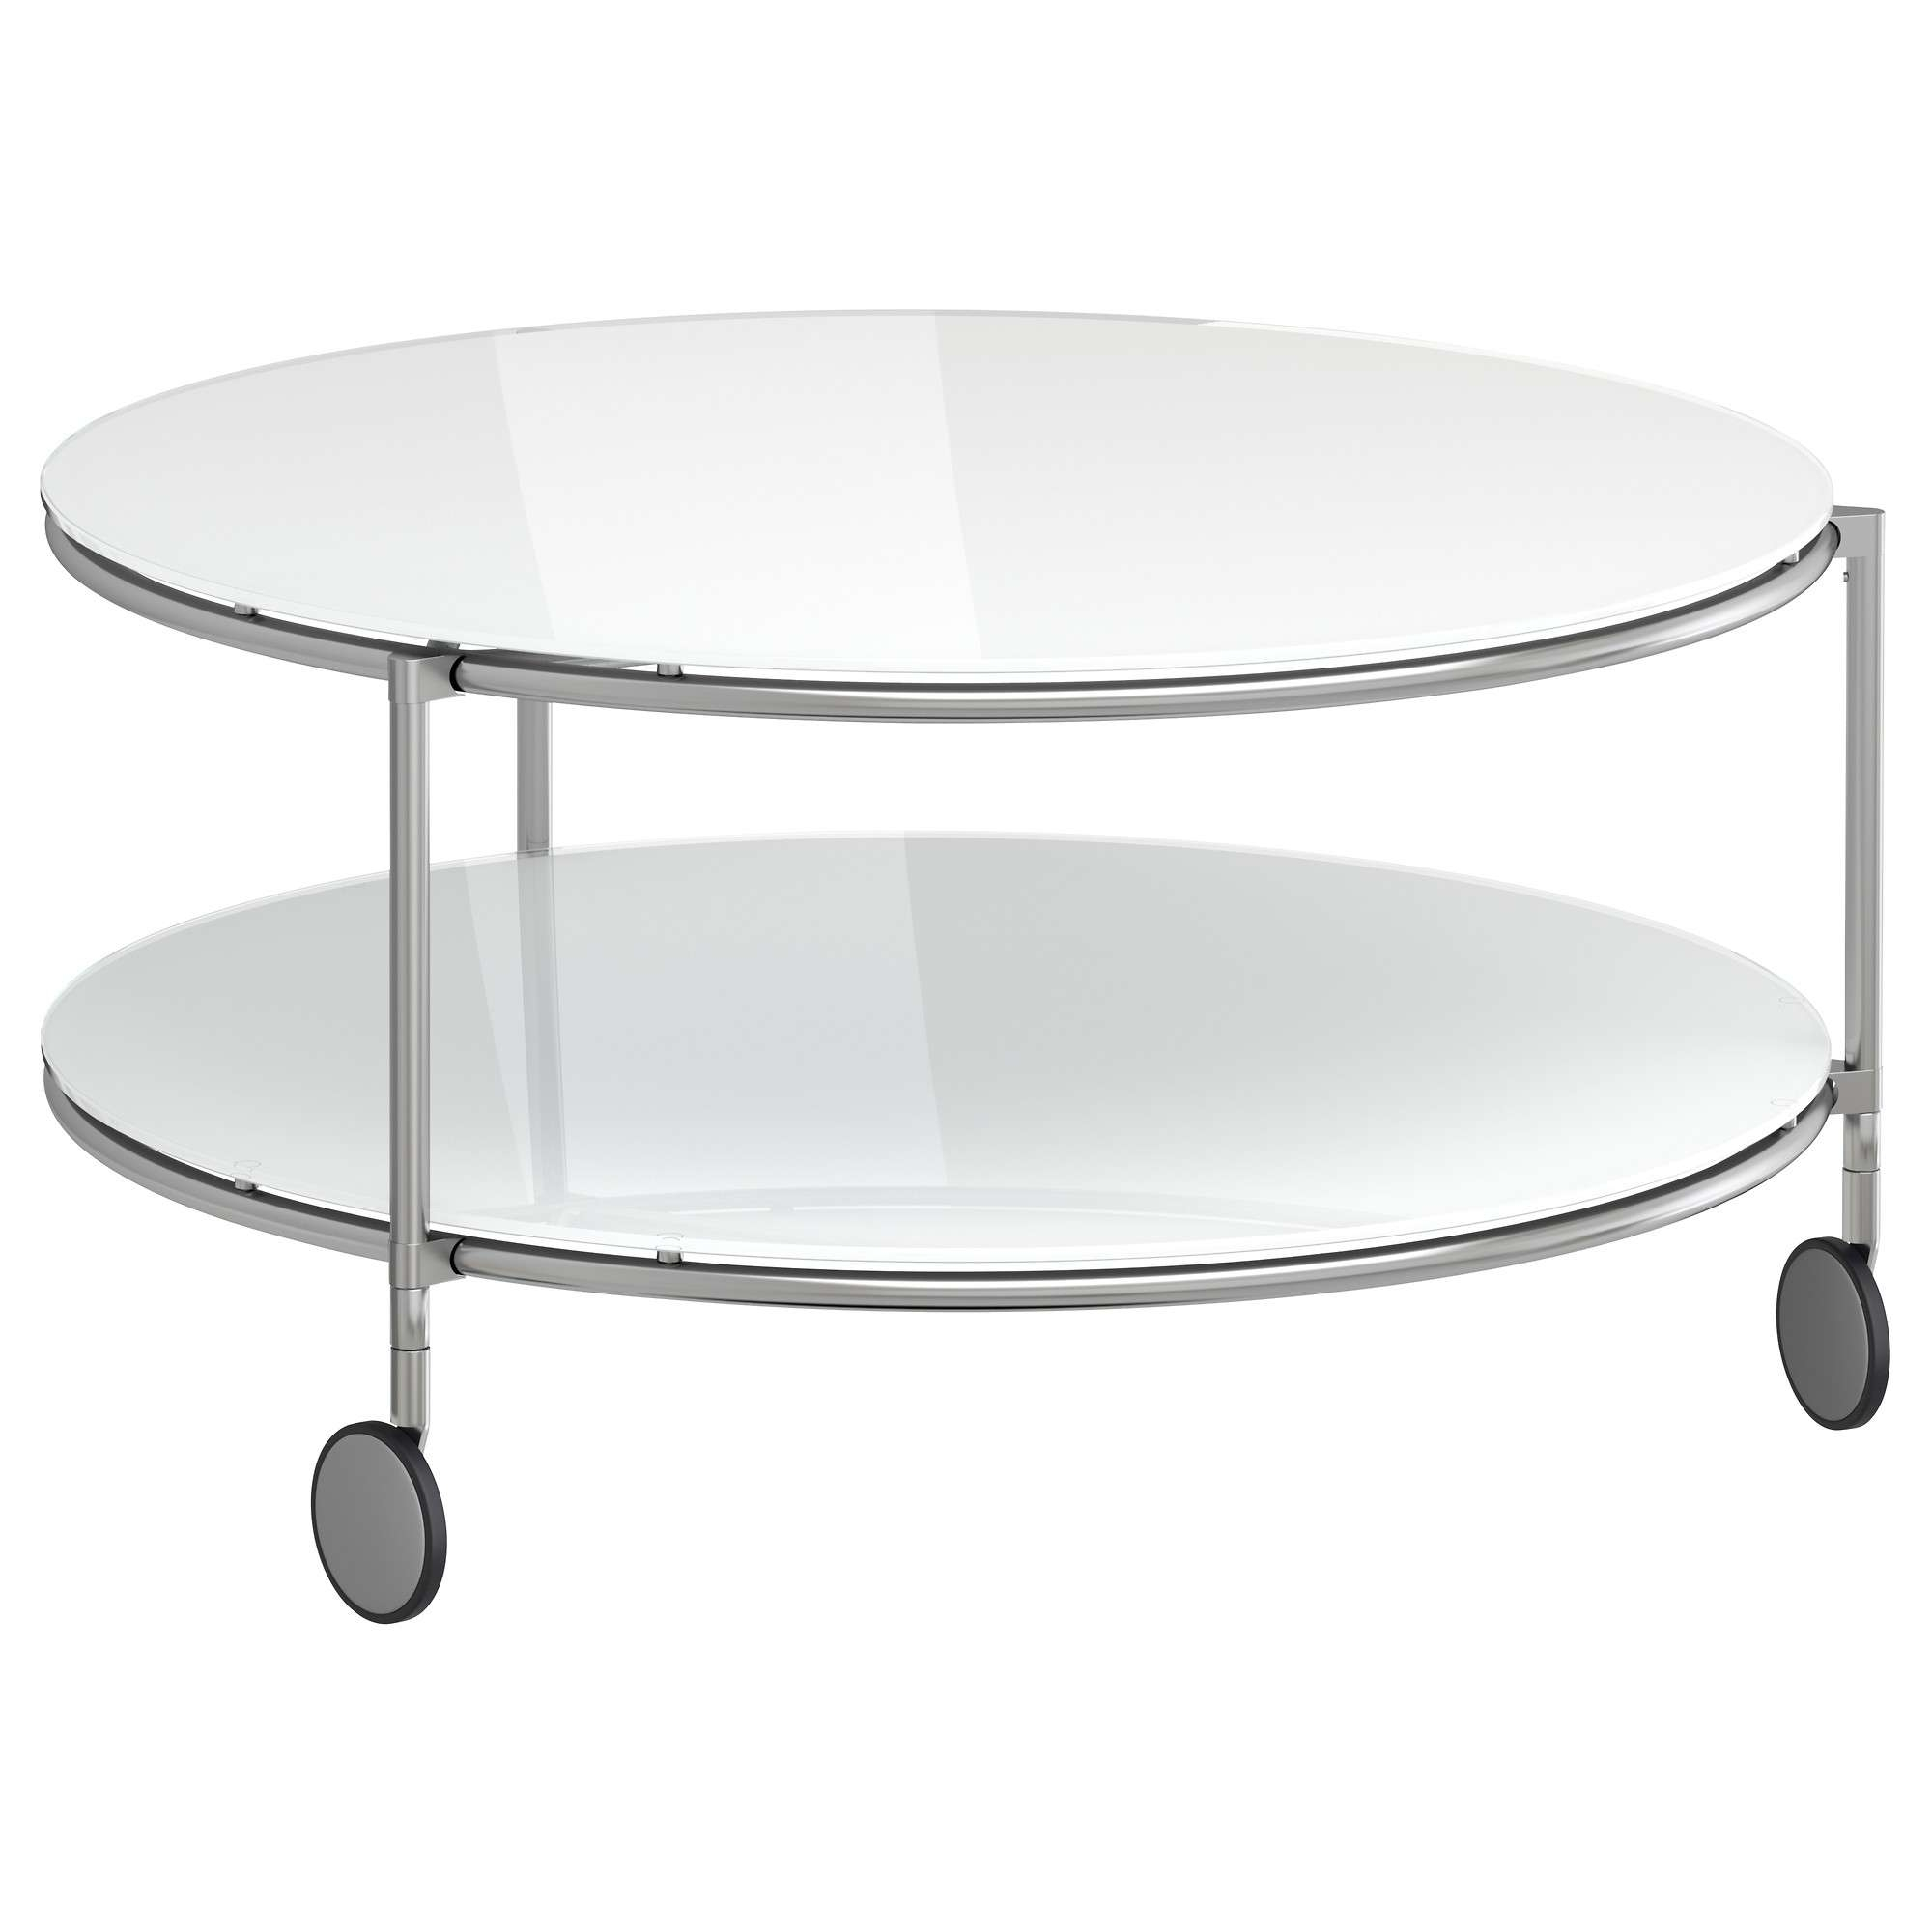 Glass Coffee Table Round – Glass Coffee Table Throughout Most Current Glass Circle Coffee Tables (View 8 of 20)